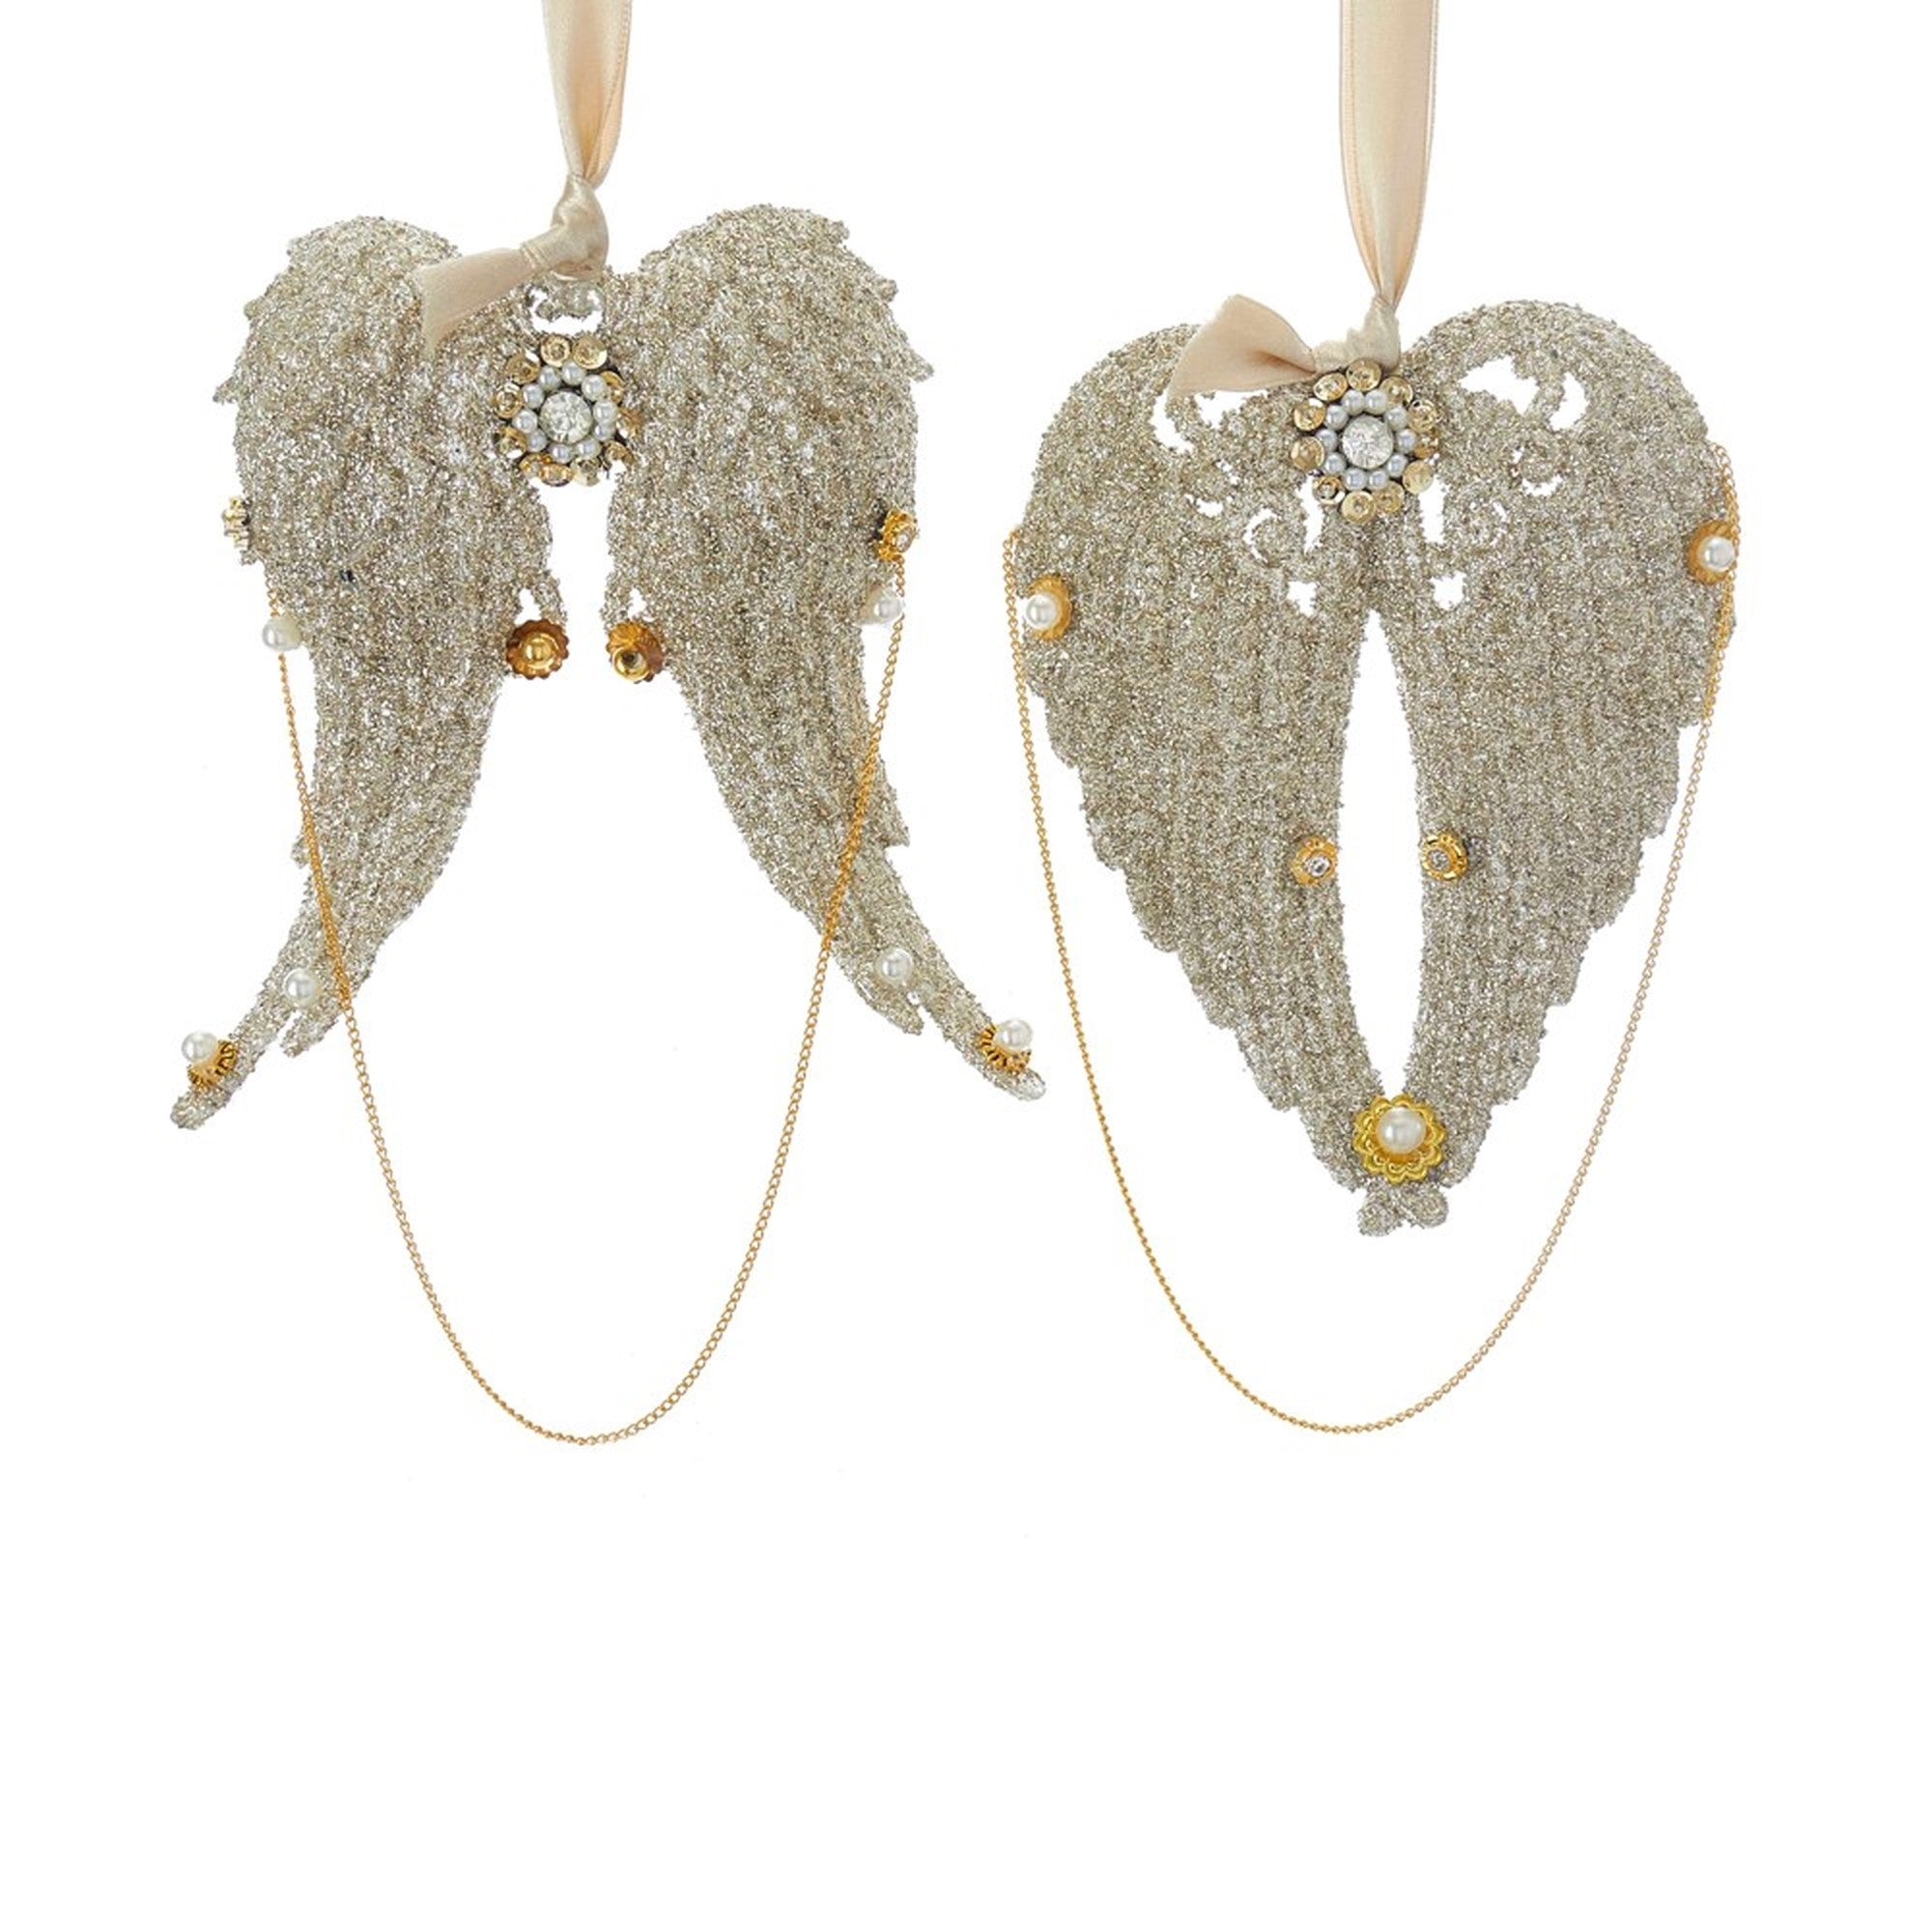 Vintage Glamour Angel Wings Ornaments | Putti Christmas